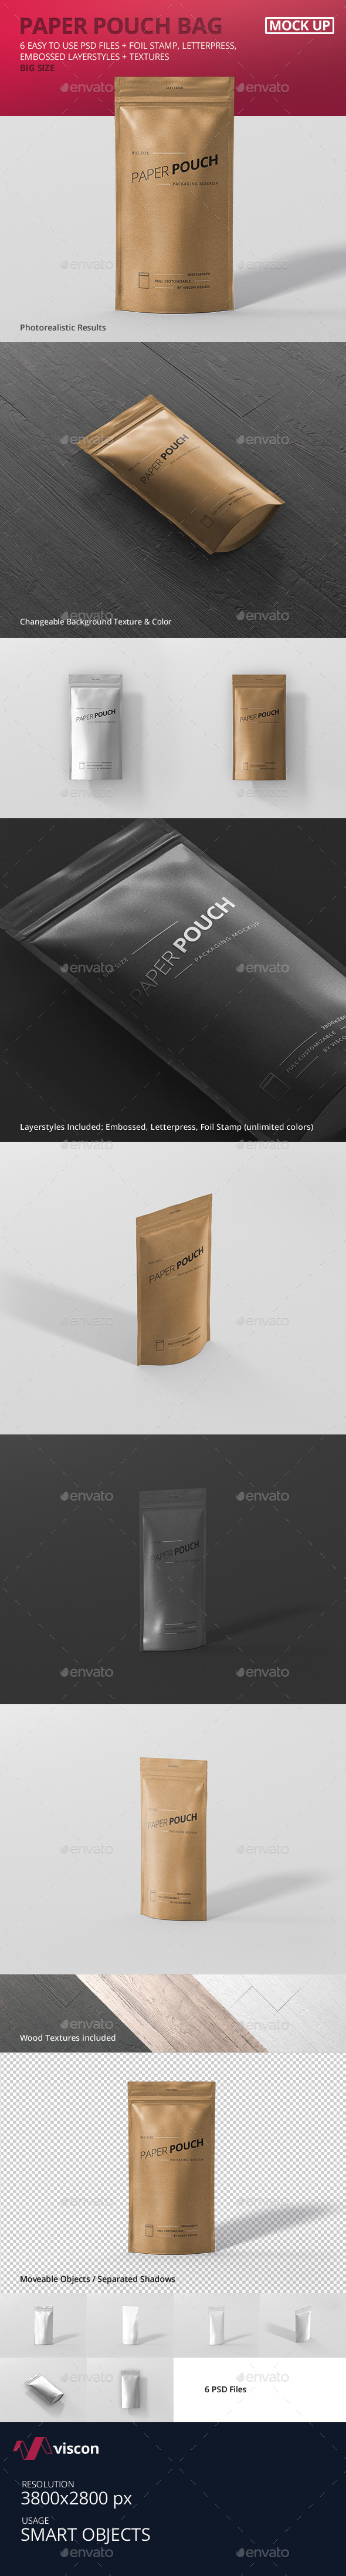 Paper Pouch Bag Mockup Big Size - Food and Drink Packaging